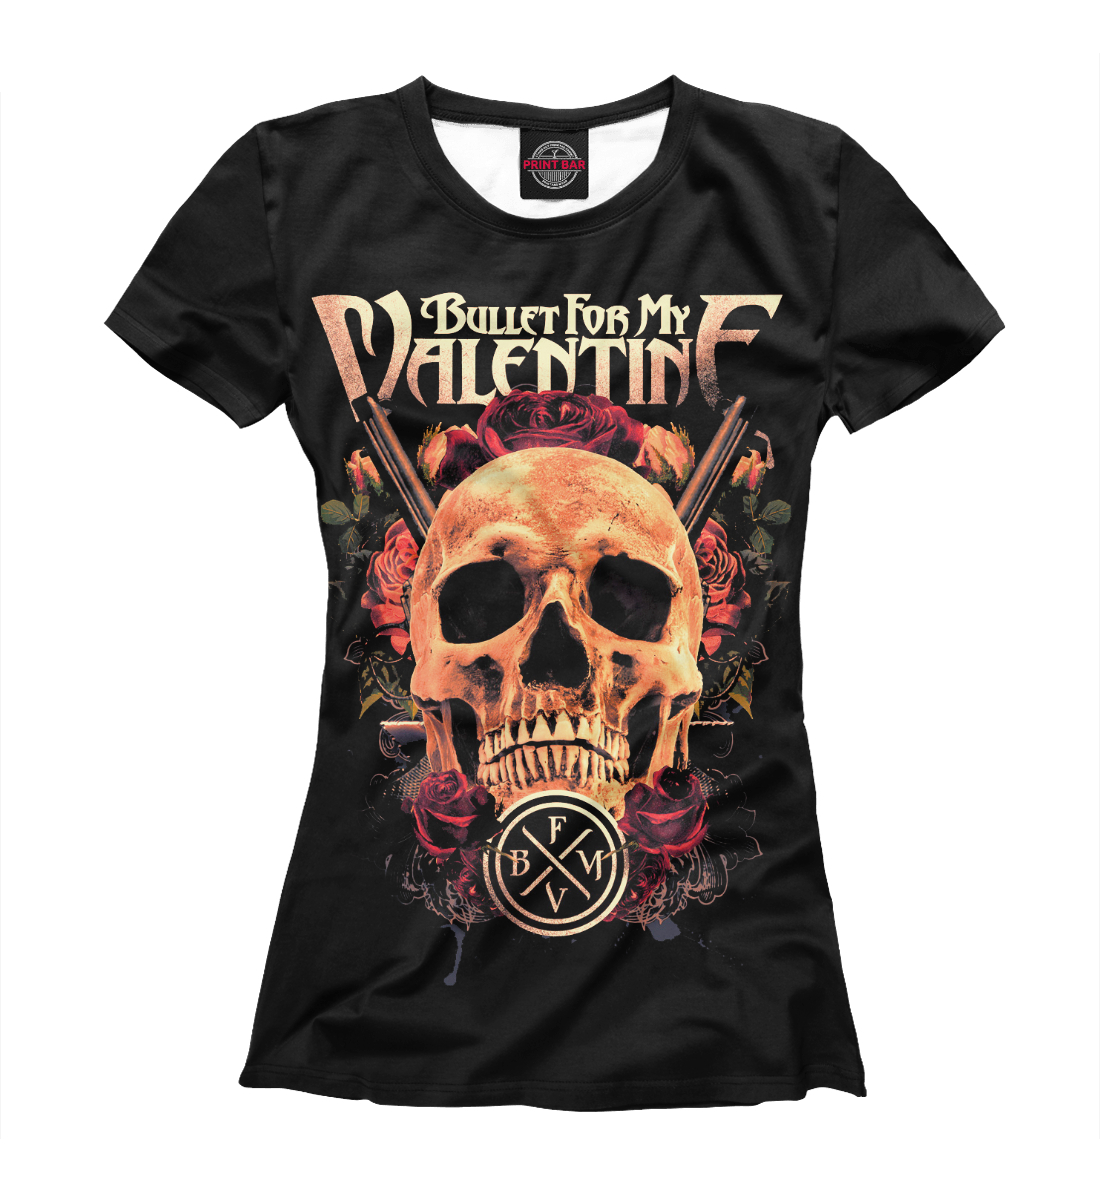 Купить Bullet for My Valentine Skull, Printbar, Футболки, BMV-738671-fut-1